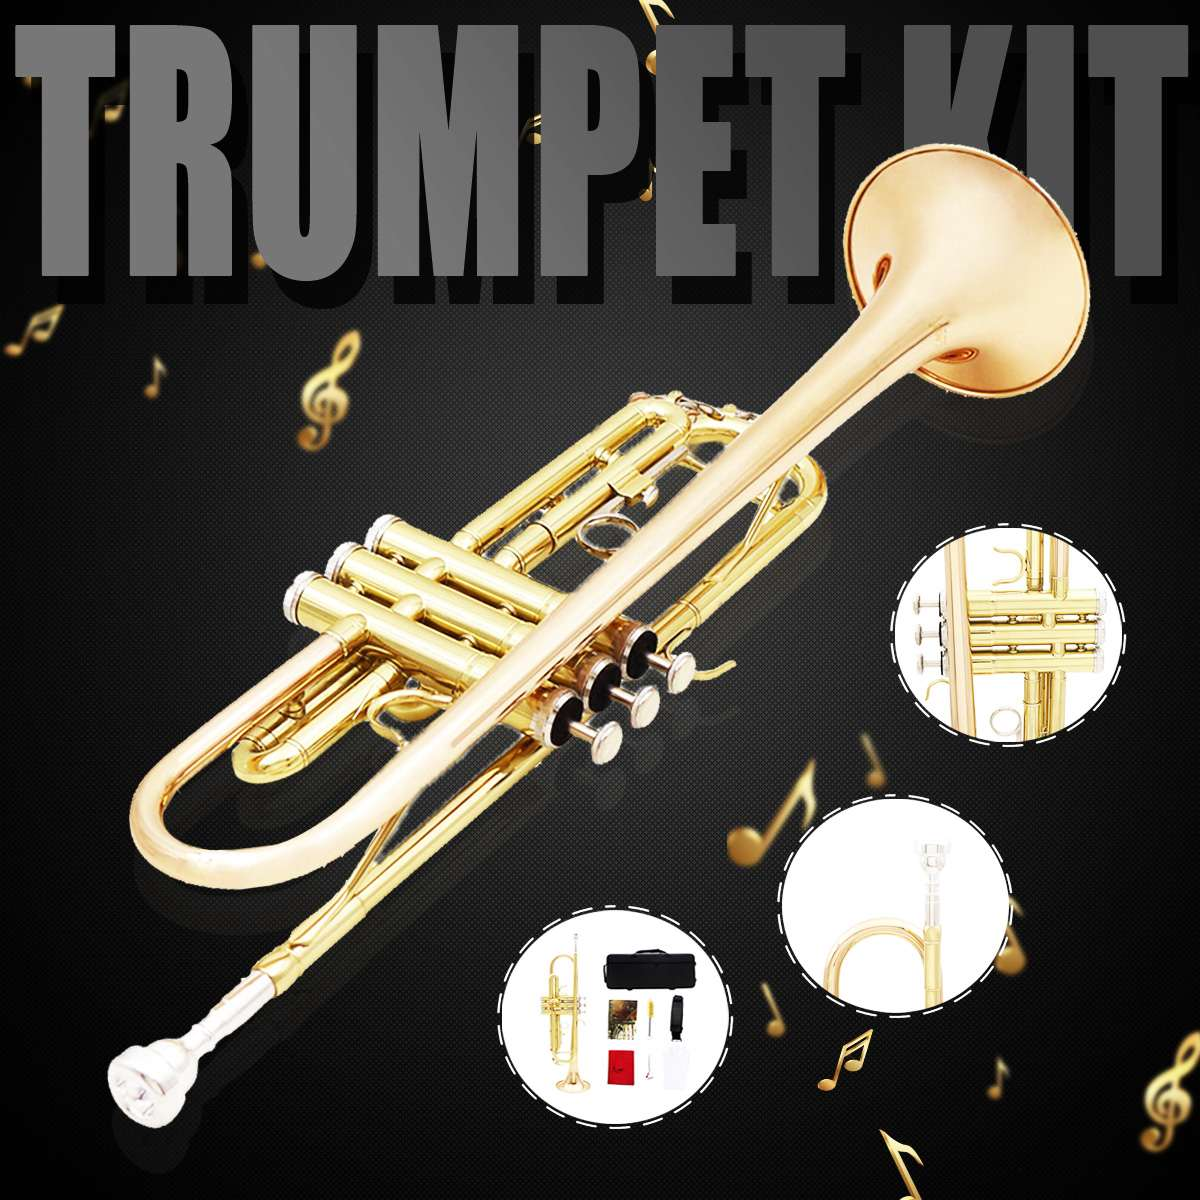 Bach Trumpet  Plated GOLD KEY LT180S-72 Flat Bb Professional Trumpet Bell Top Musical Instruments BrassBach Trumpet  Plated GOLD KEY LT180S-72 Flat Bb Professional Trumpet Bell Top Musical Instruments Brass